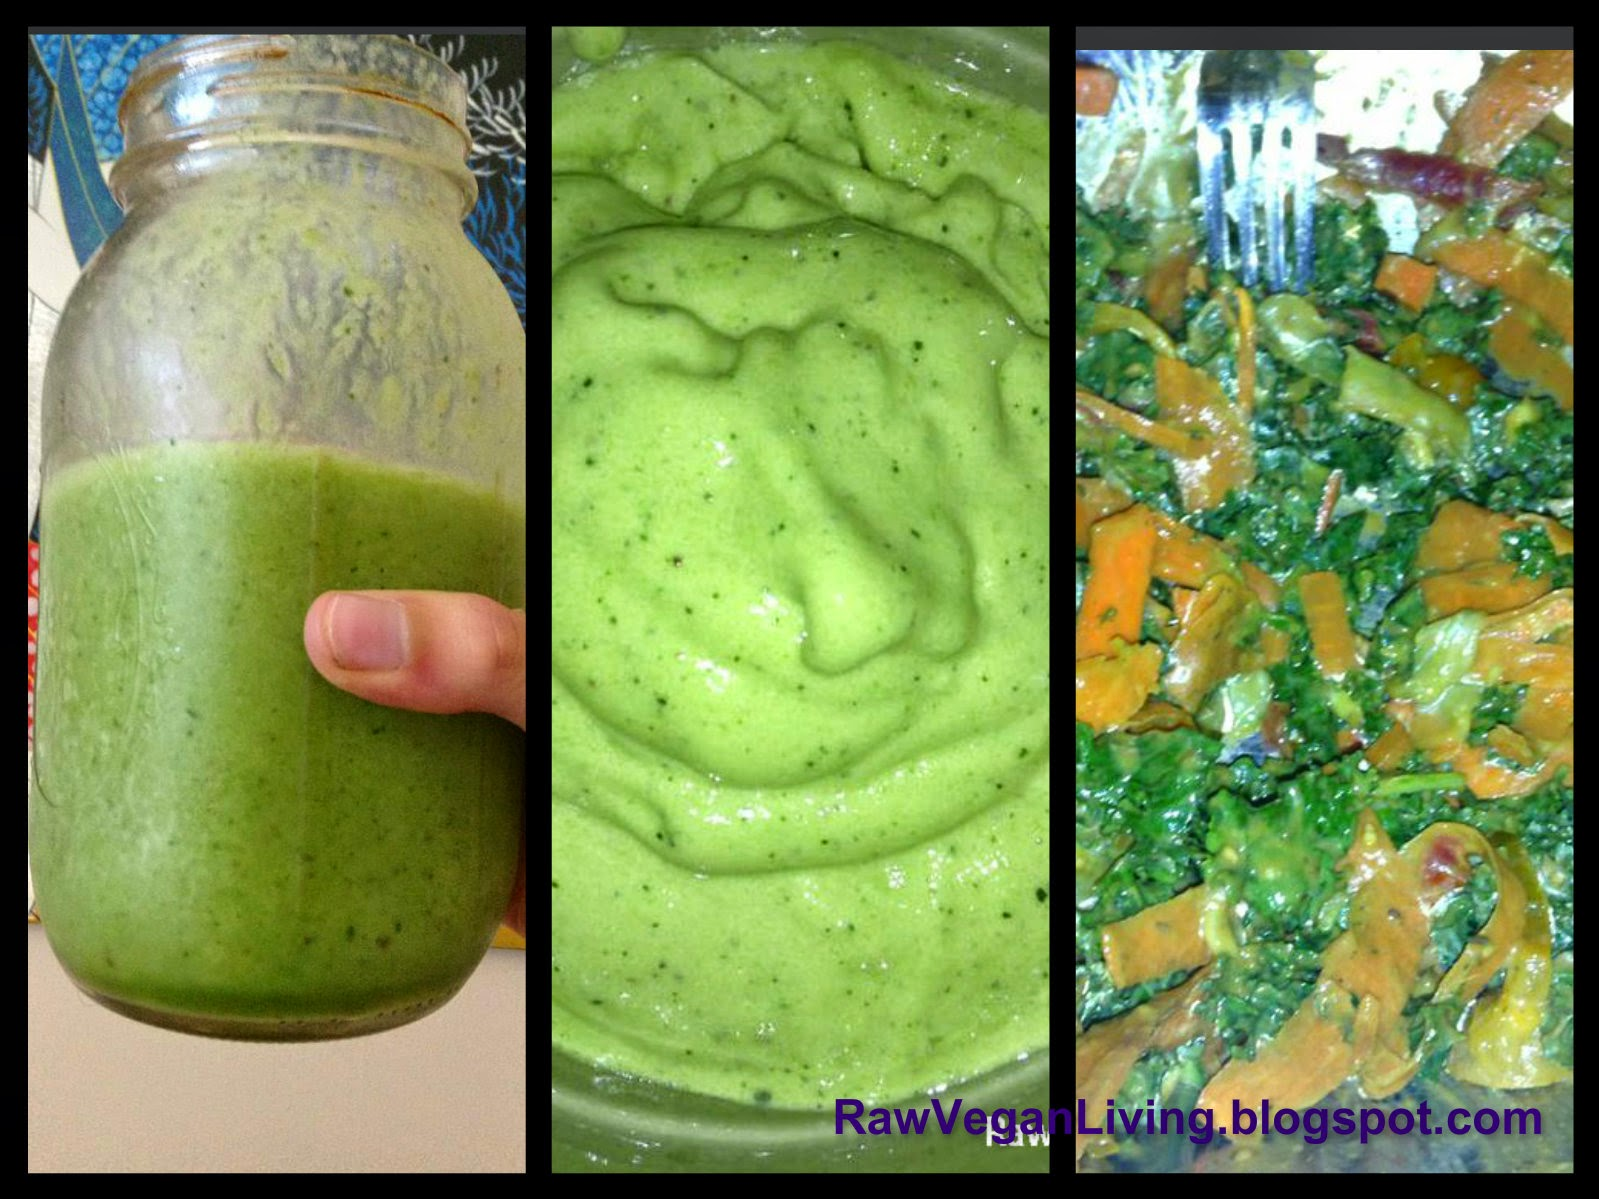 green monster smoothie, kale banana ice cream and green monster salad